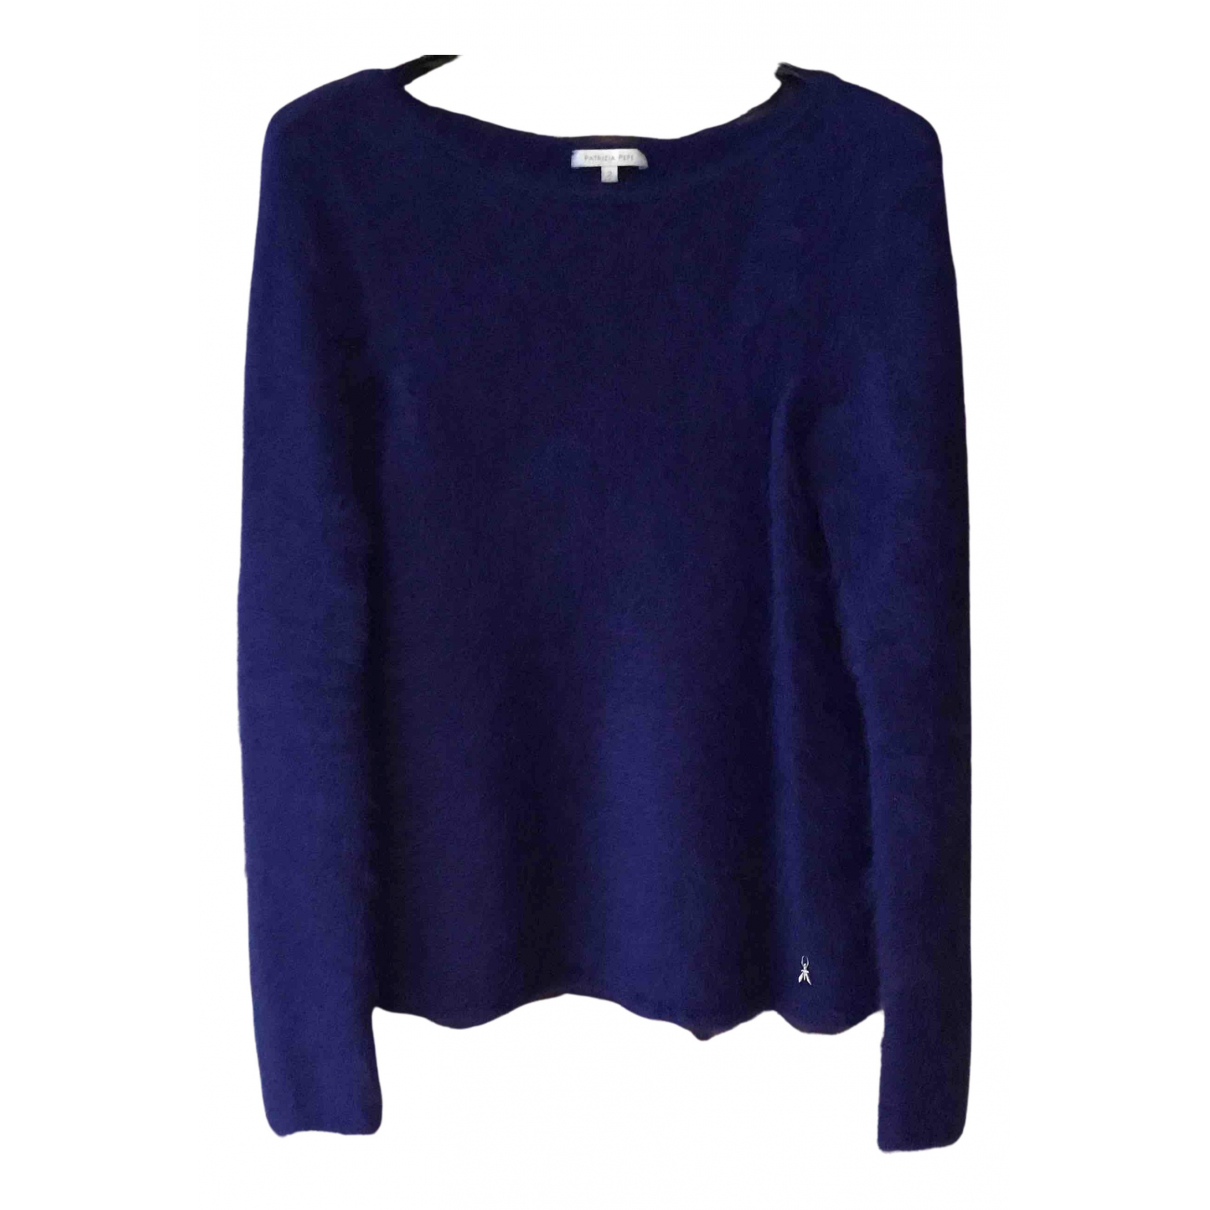 Patrizia Pepe N Blue Wool Knitwear for Women 38 FR